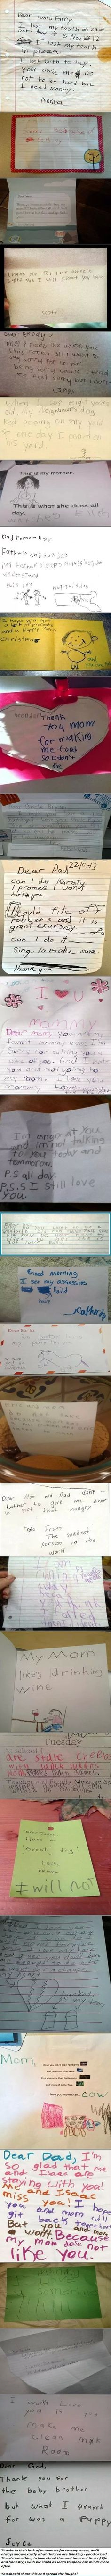 Kids say the most amazing things - Funny Stuff | Putting a smile on your face.